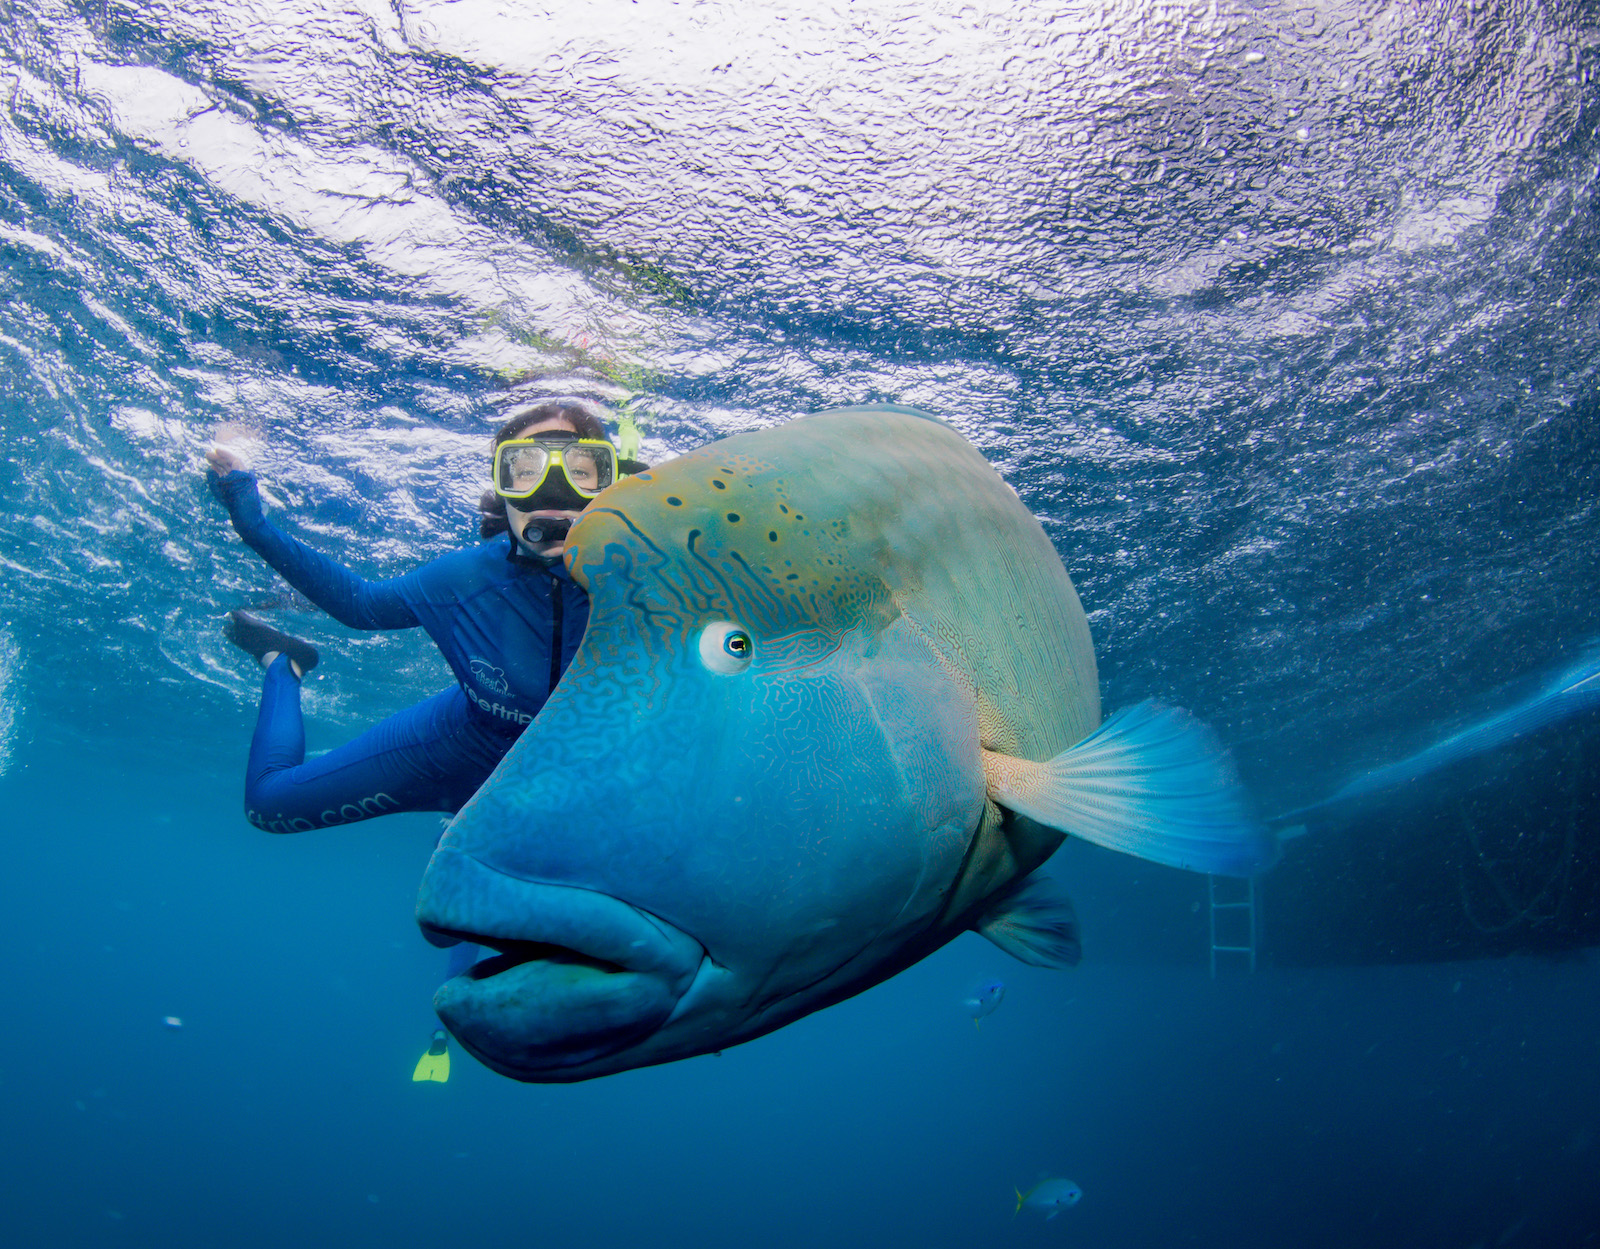 Student snorkeling with large fish